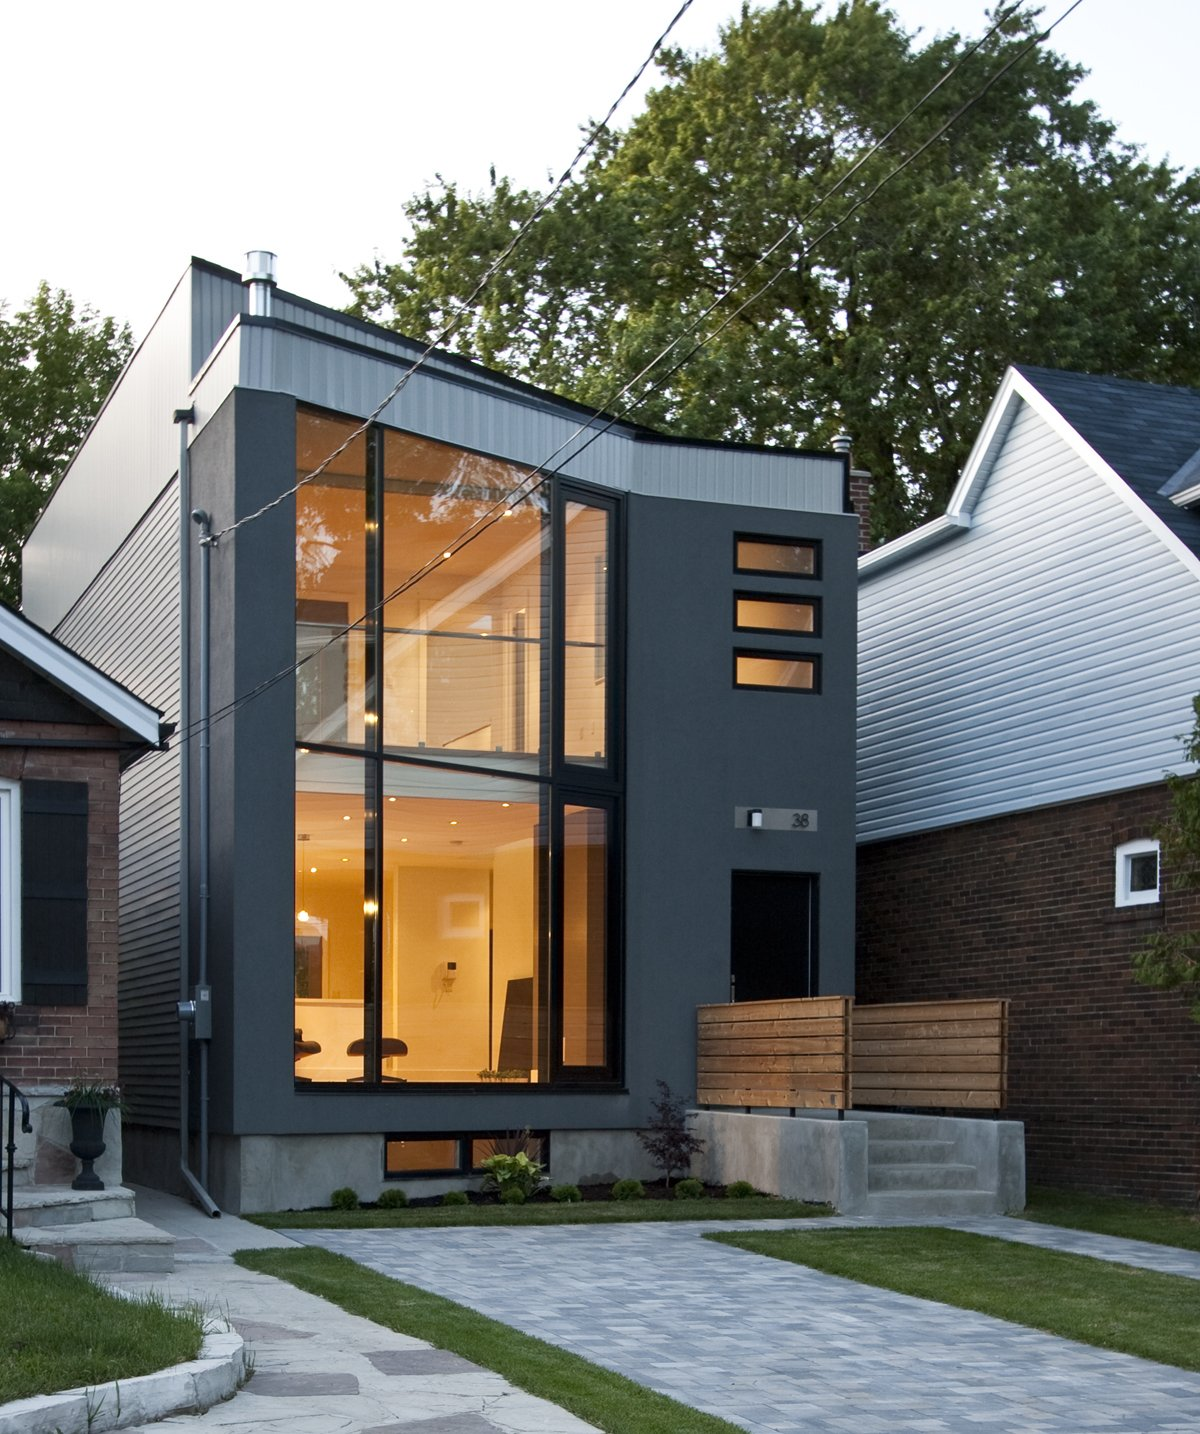 63˚ House Modern Home In Toronto, Ontario, Canada By Rzlbd